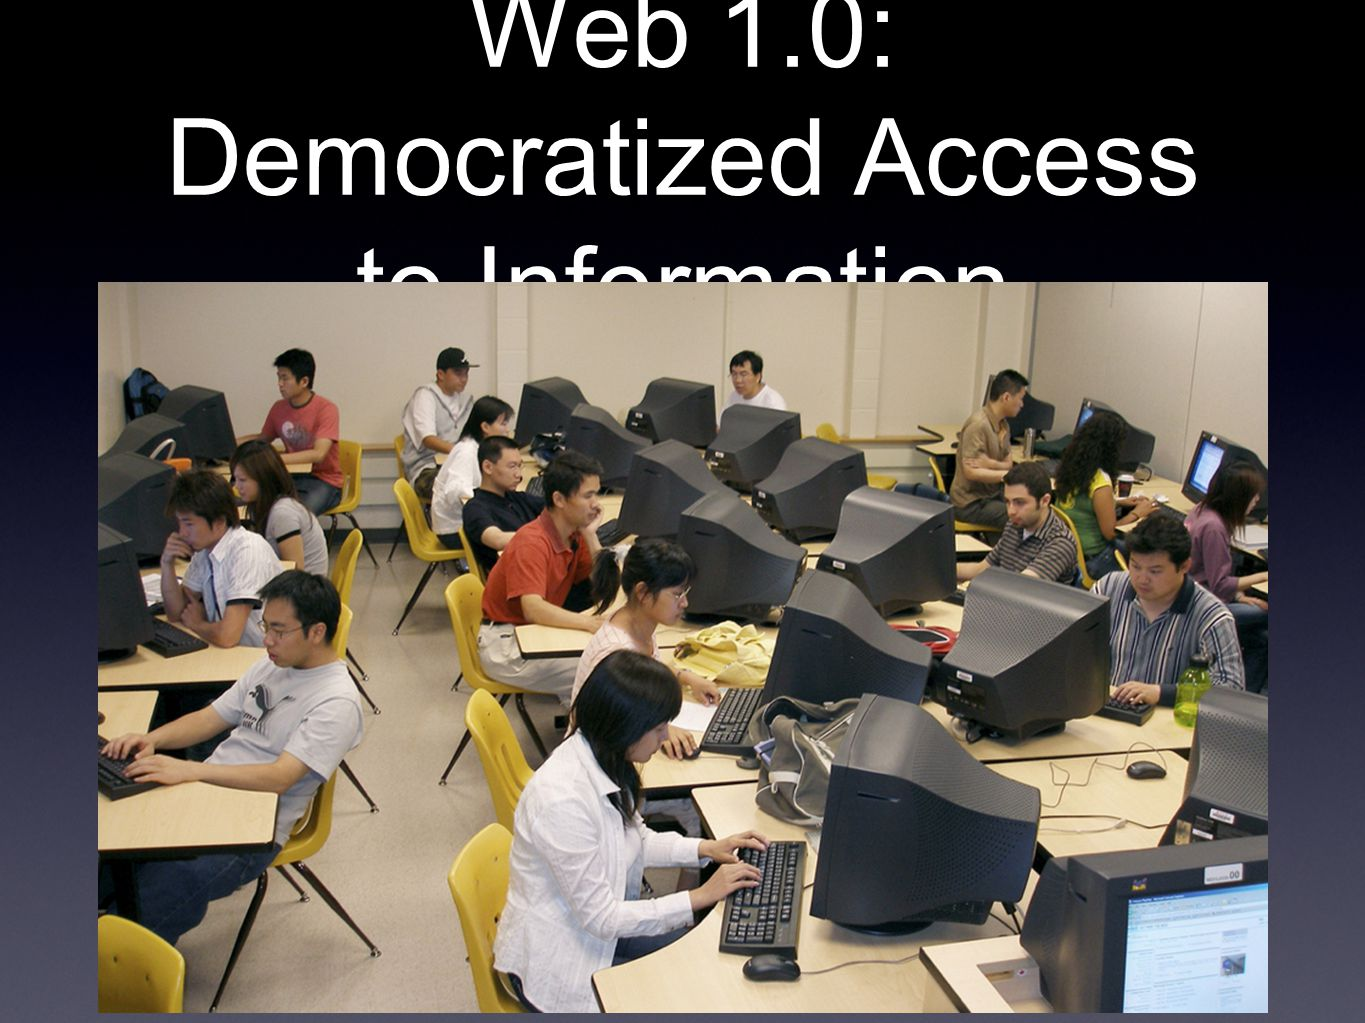 Web 1.0: Democratized Access to Information